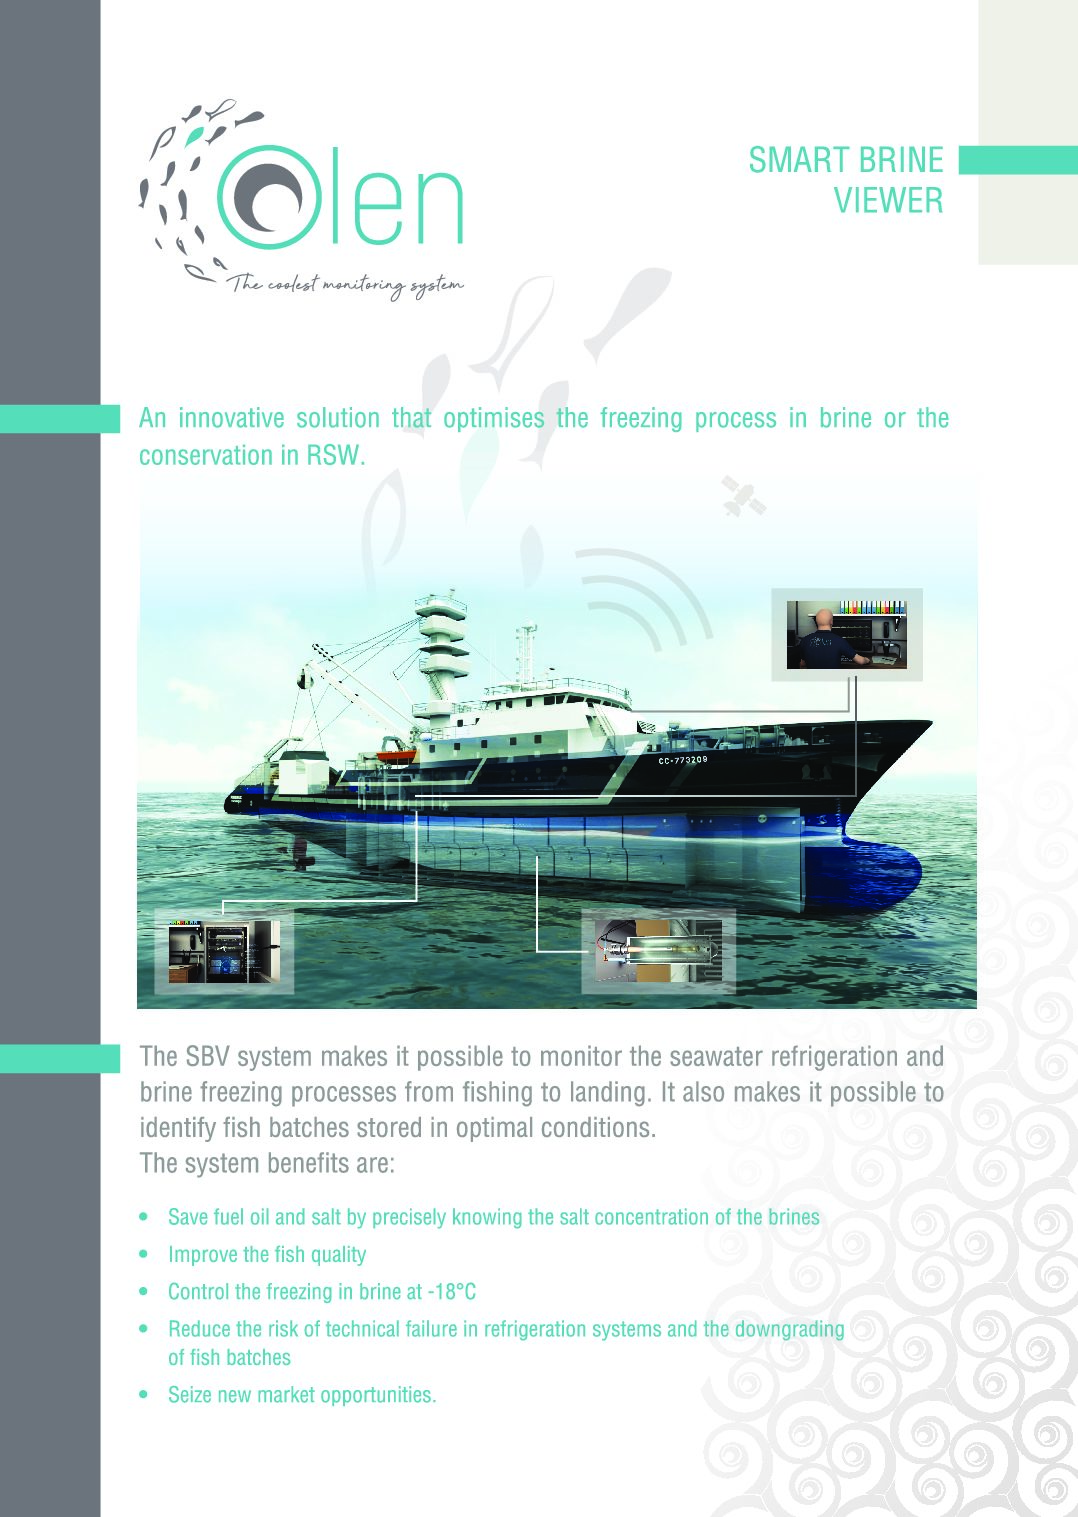 SMART BRINE VIEWER ENG pdf - Products